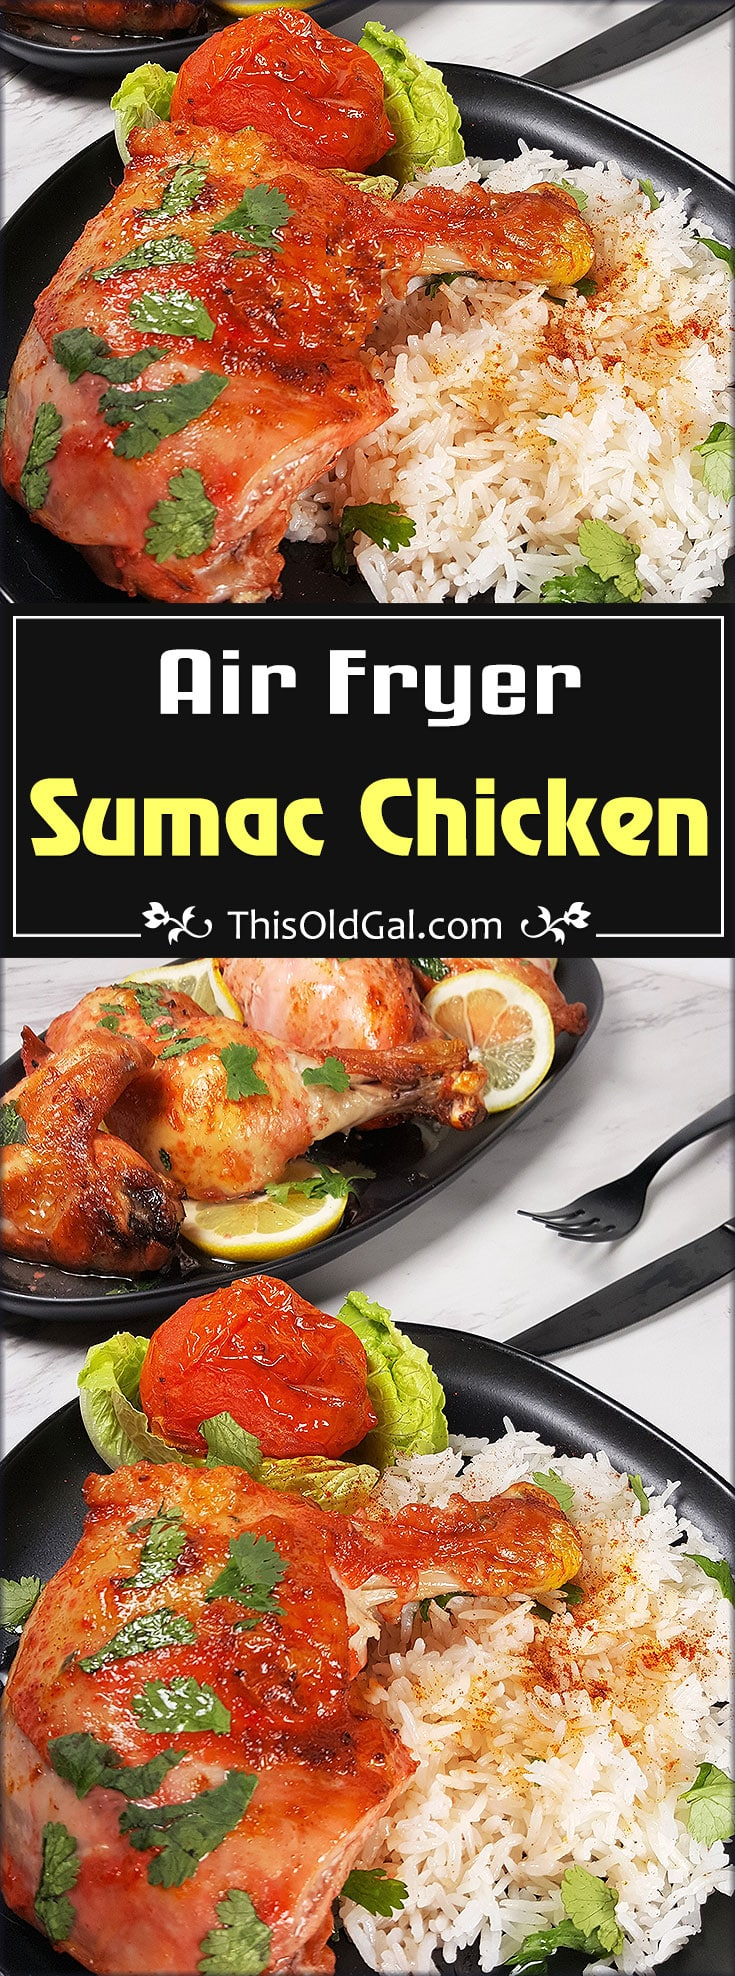 Air Fryer Middle Eastern Crispy Sumac Chicken